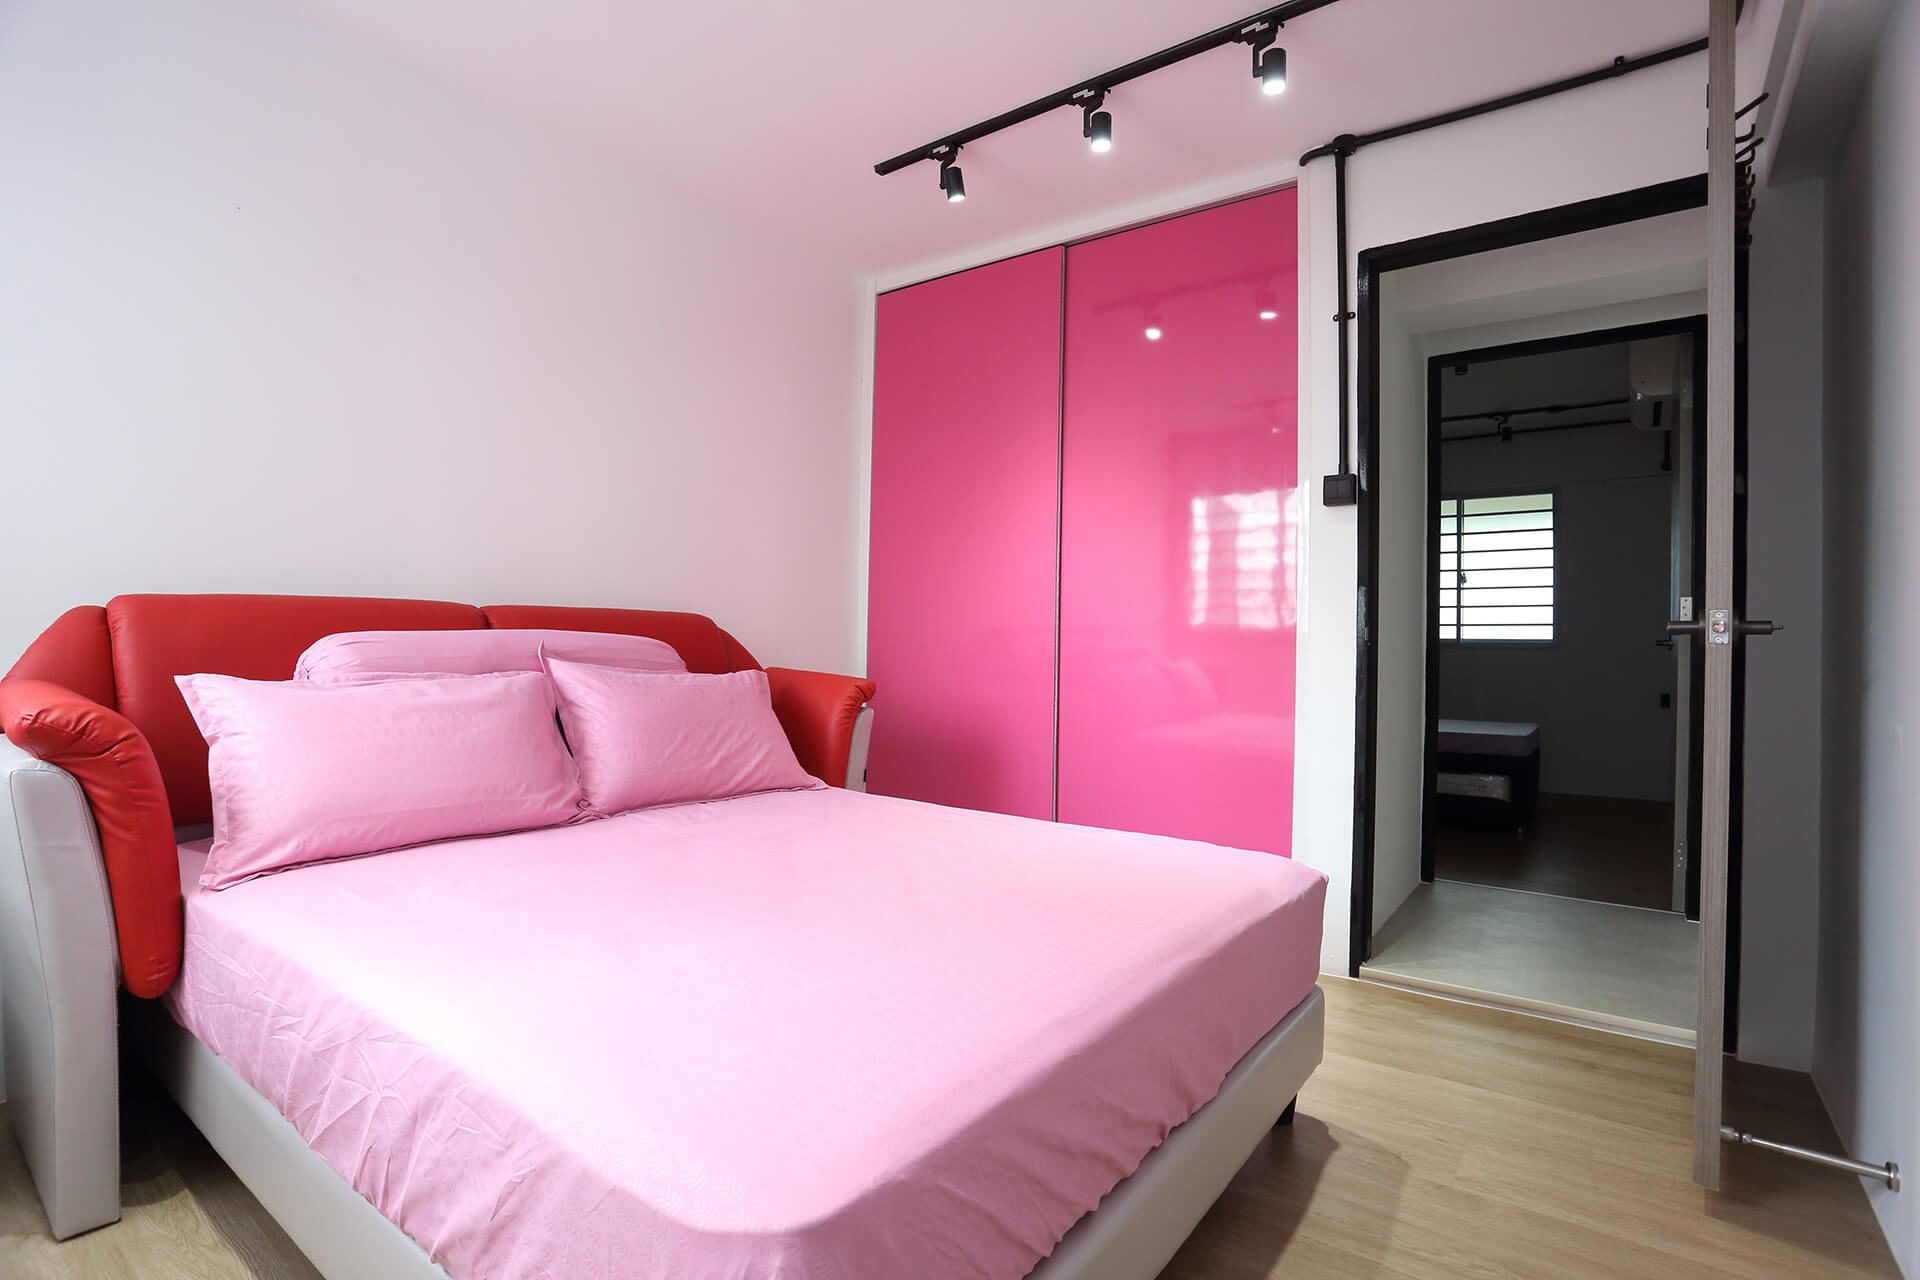 Classic Monotone Interior Design Pink Bedroom with Spot Lights